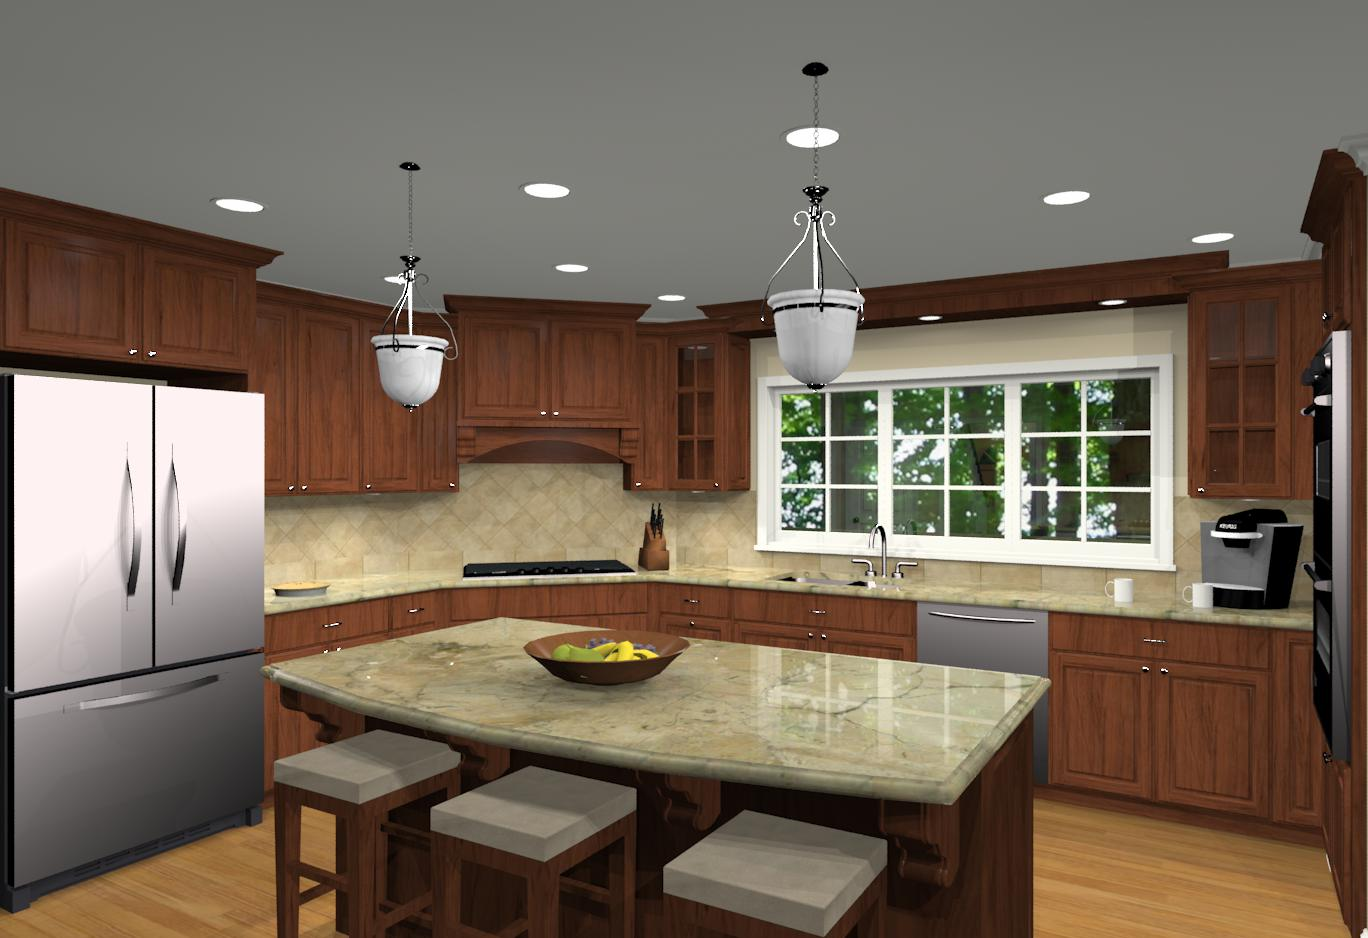 5 Common New Jersey Home Remodeling Mistakes To Avoid